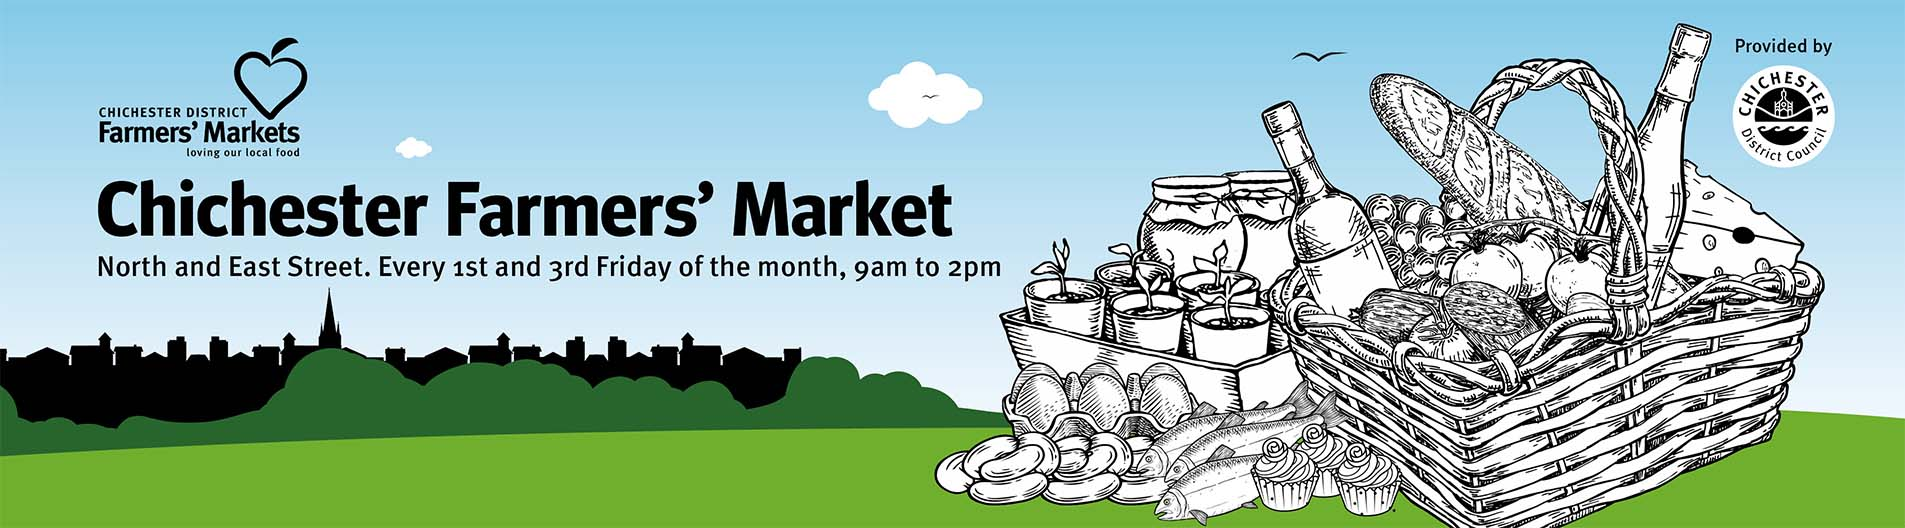 Chichester Farmers' Market set for safe return to city centre 2021